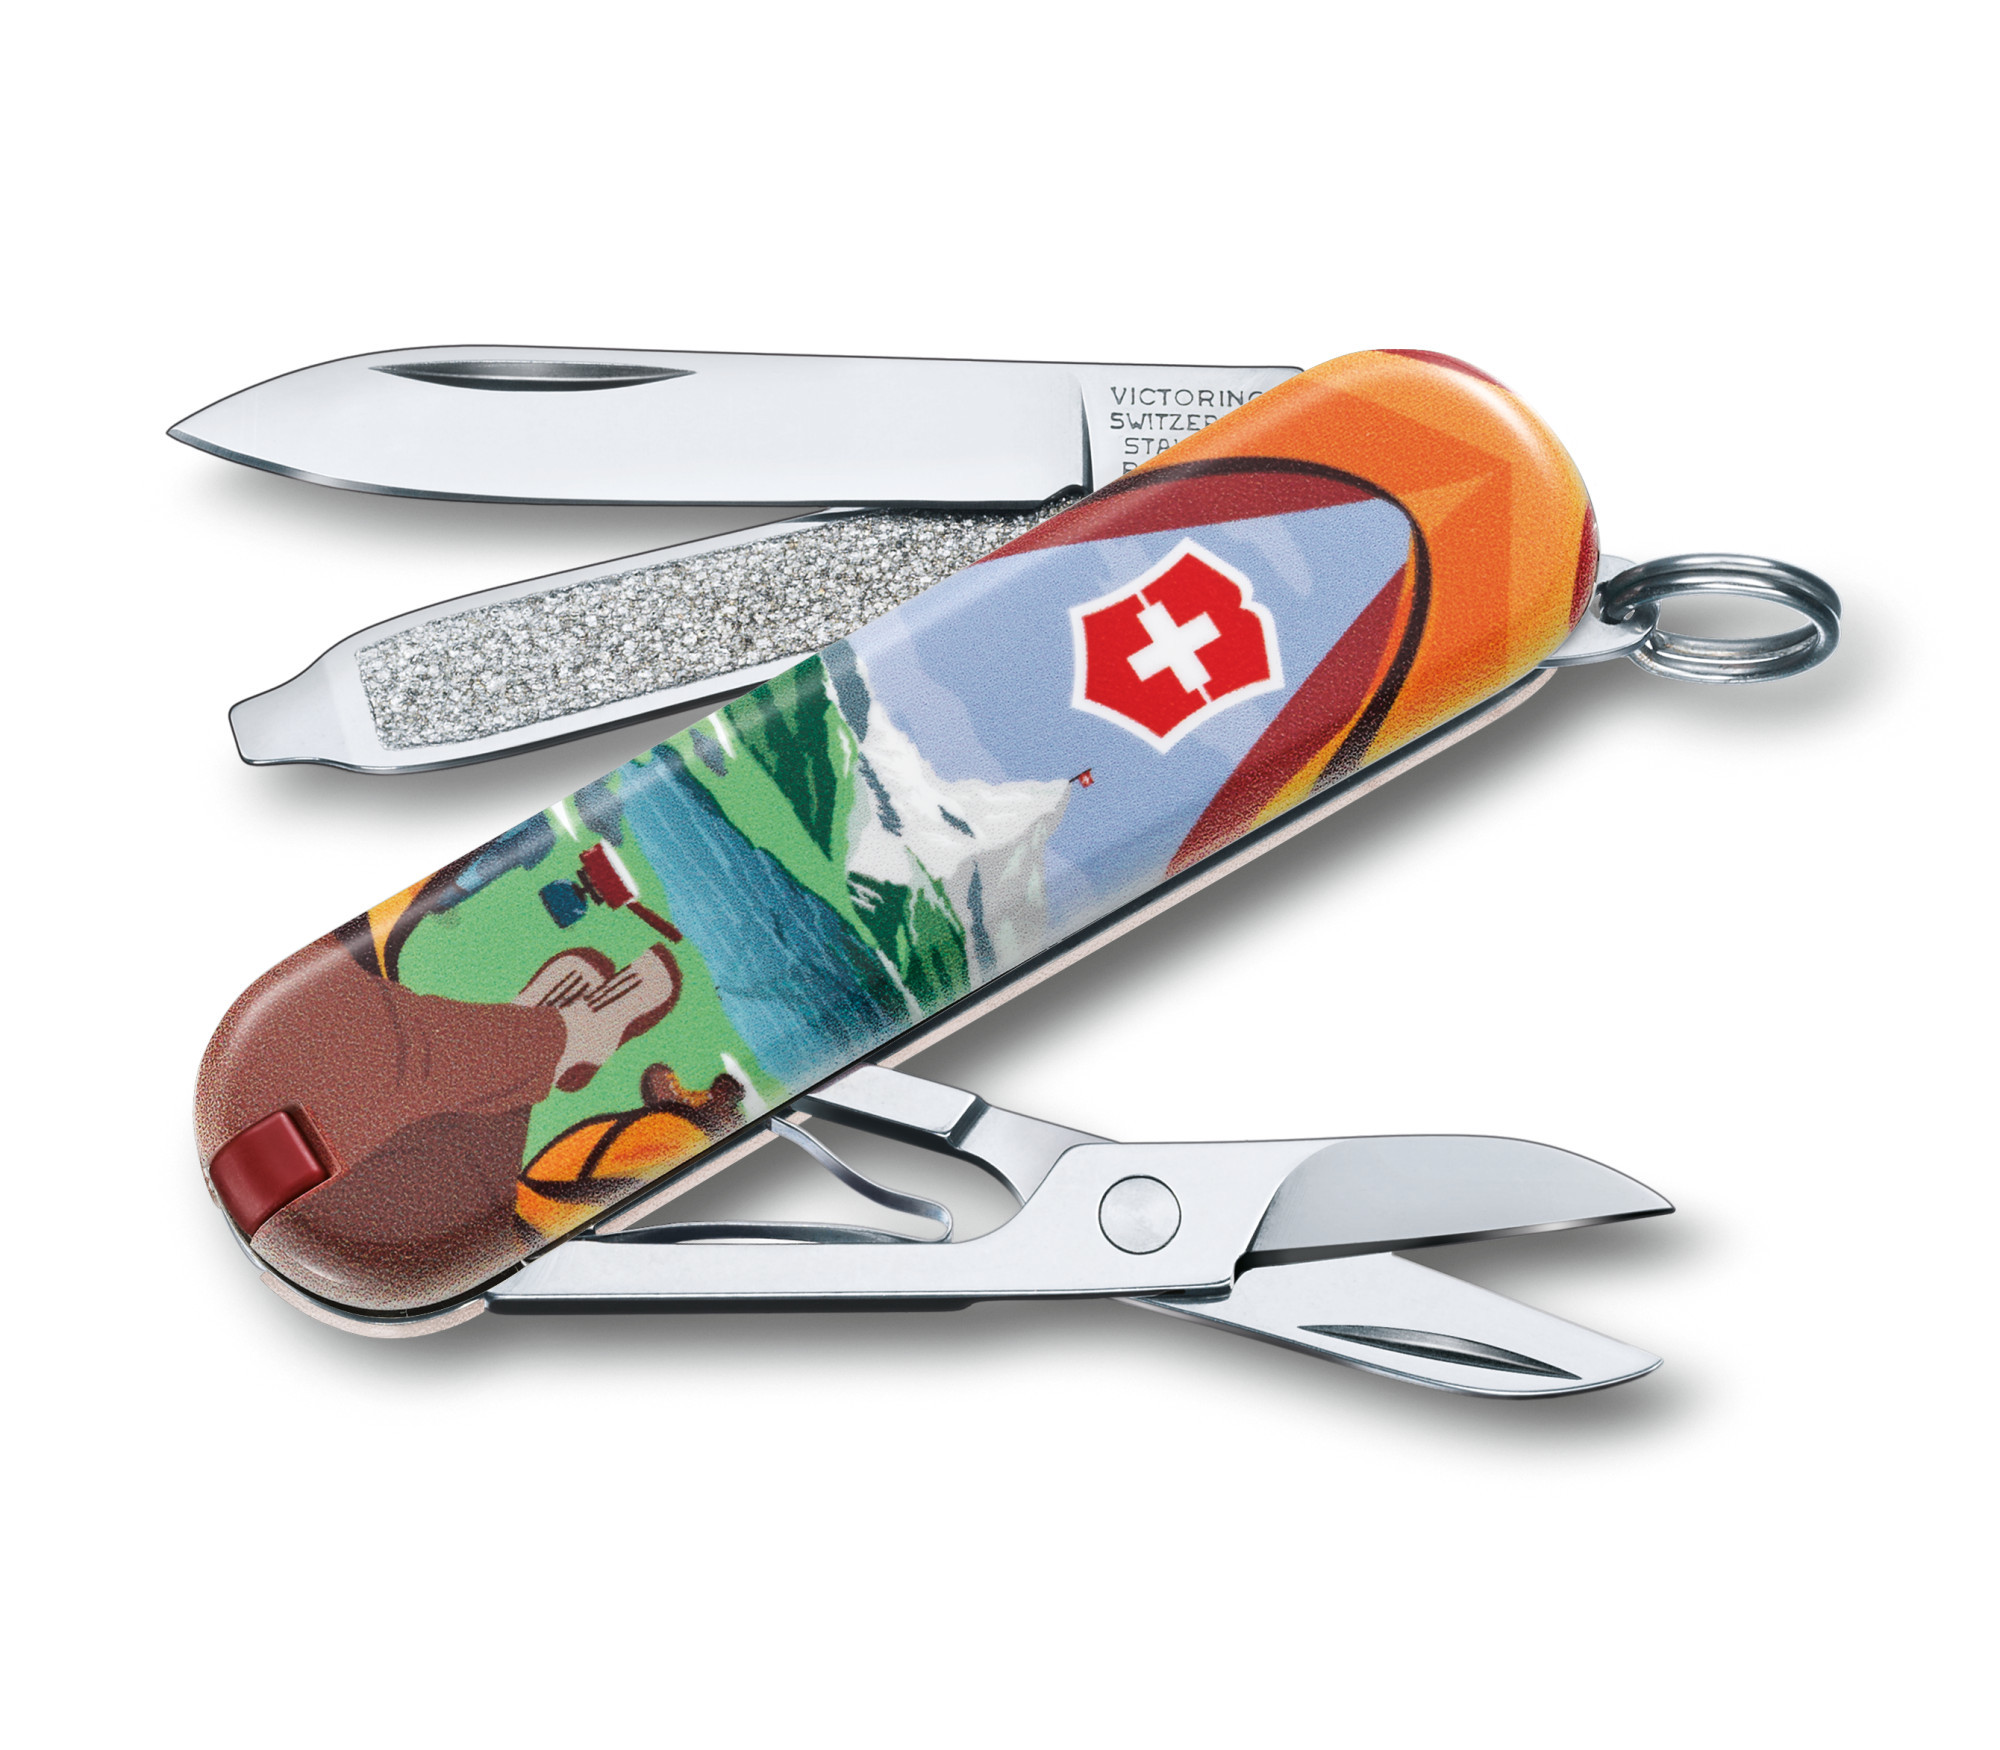 Нож перочинный Victorinox Classic Call of Nature (0.6223.L1802) 58 мм 7 функций нож перочинный victorinox classic 0 6223 94